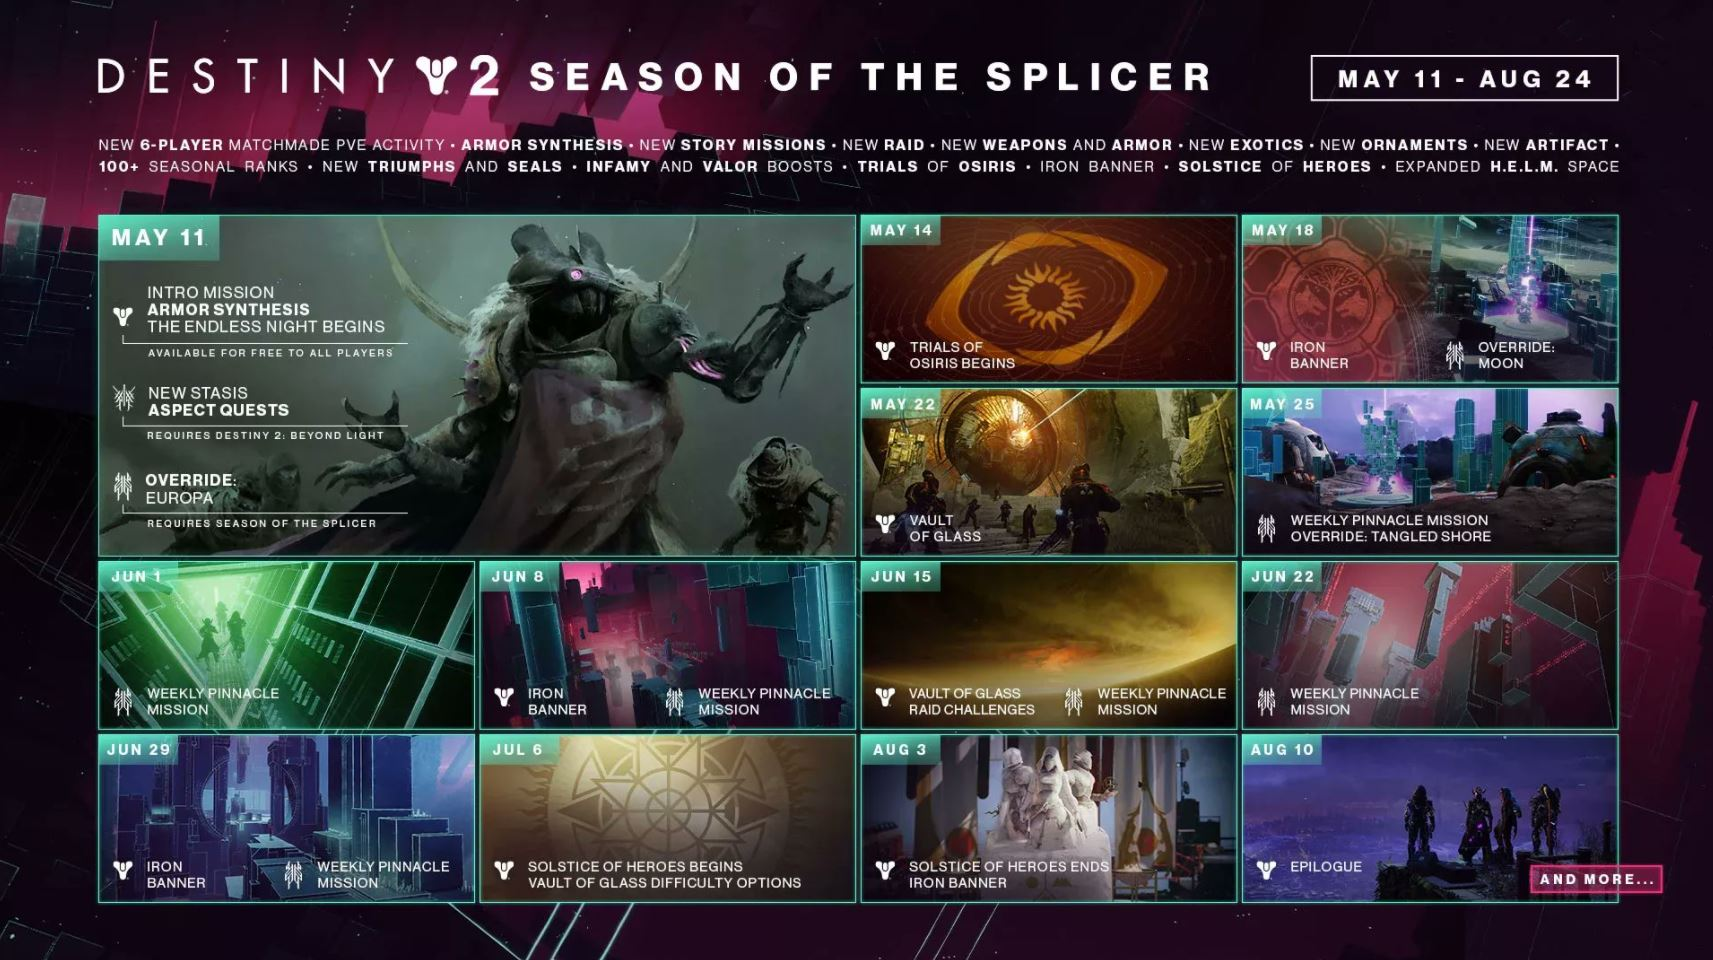 destiny-2-season-of-the-splicer-releases-next-week-full-details-and-roadmap-revealed